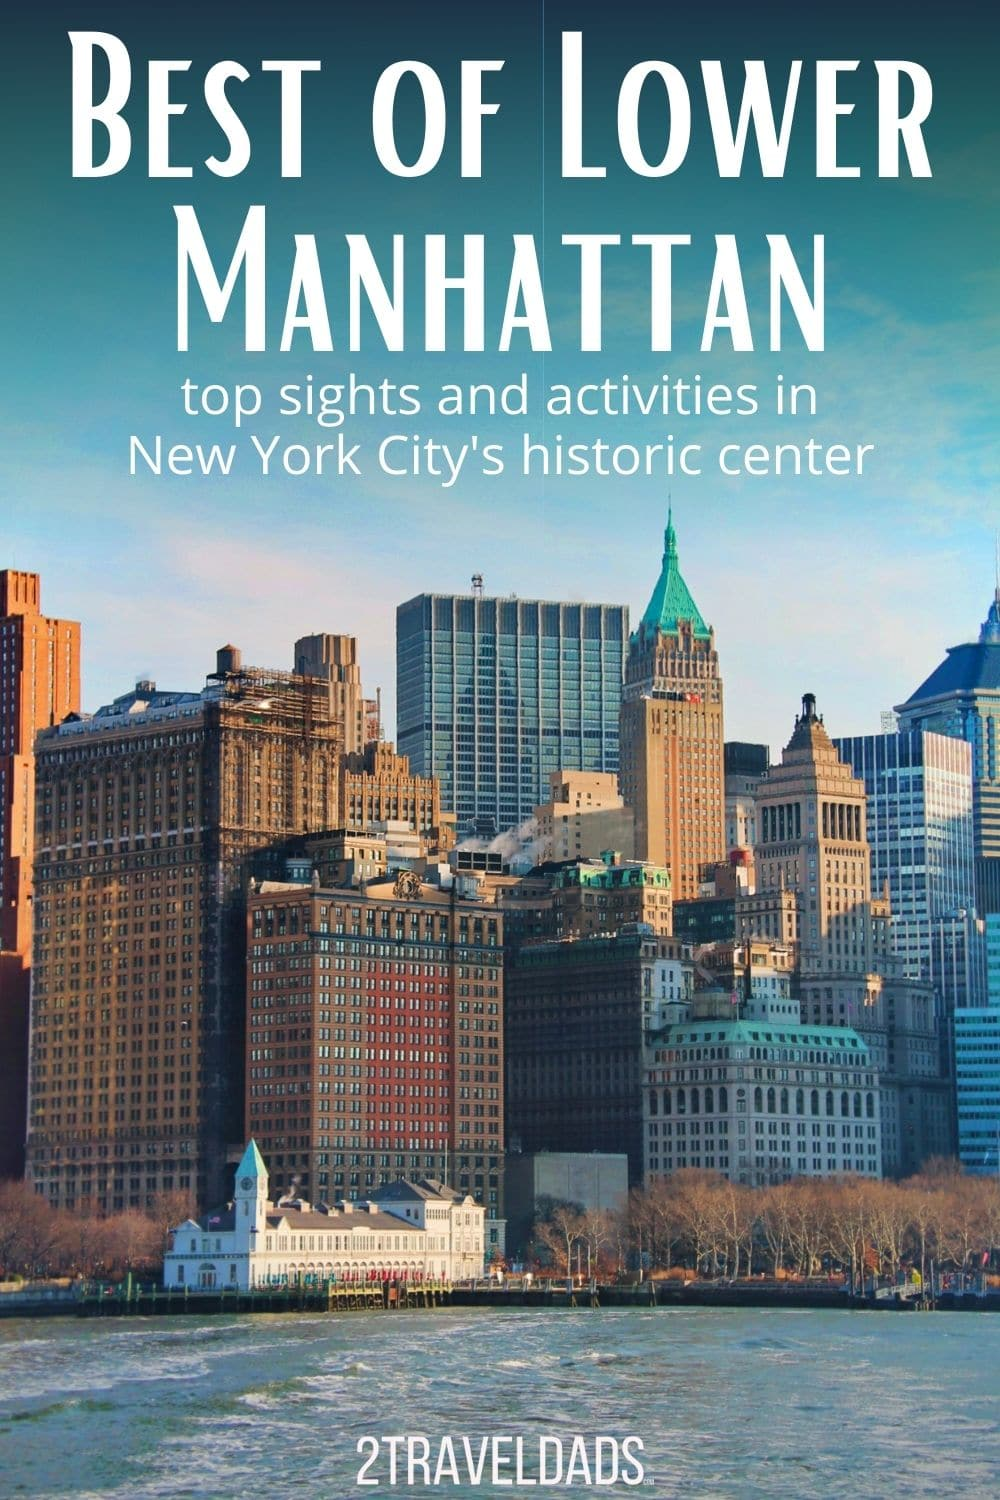 Lower Manhattan is the historic center of New York City. Discover the best NYC historic sites from Wall Street to how to get to the Statue of Liberty. Interesting museums and free things to do in New York.